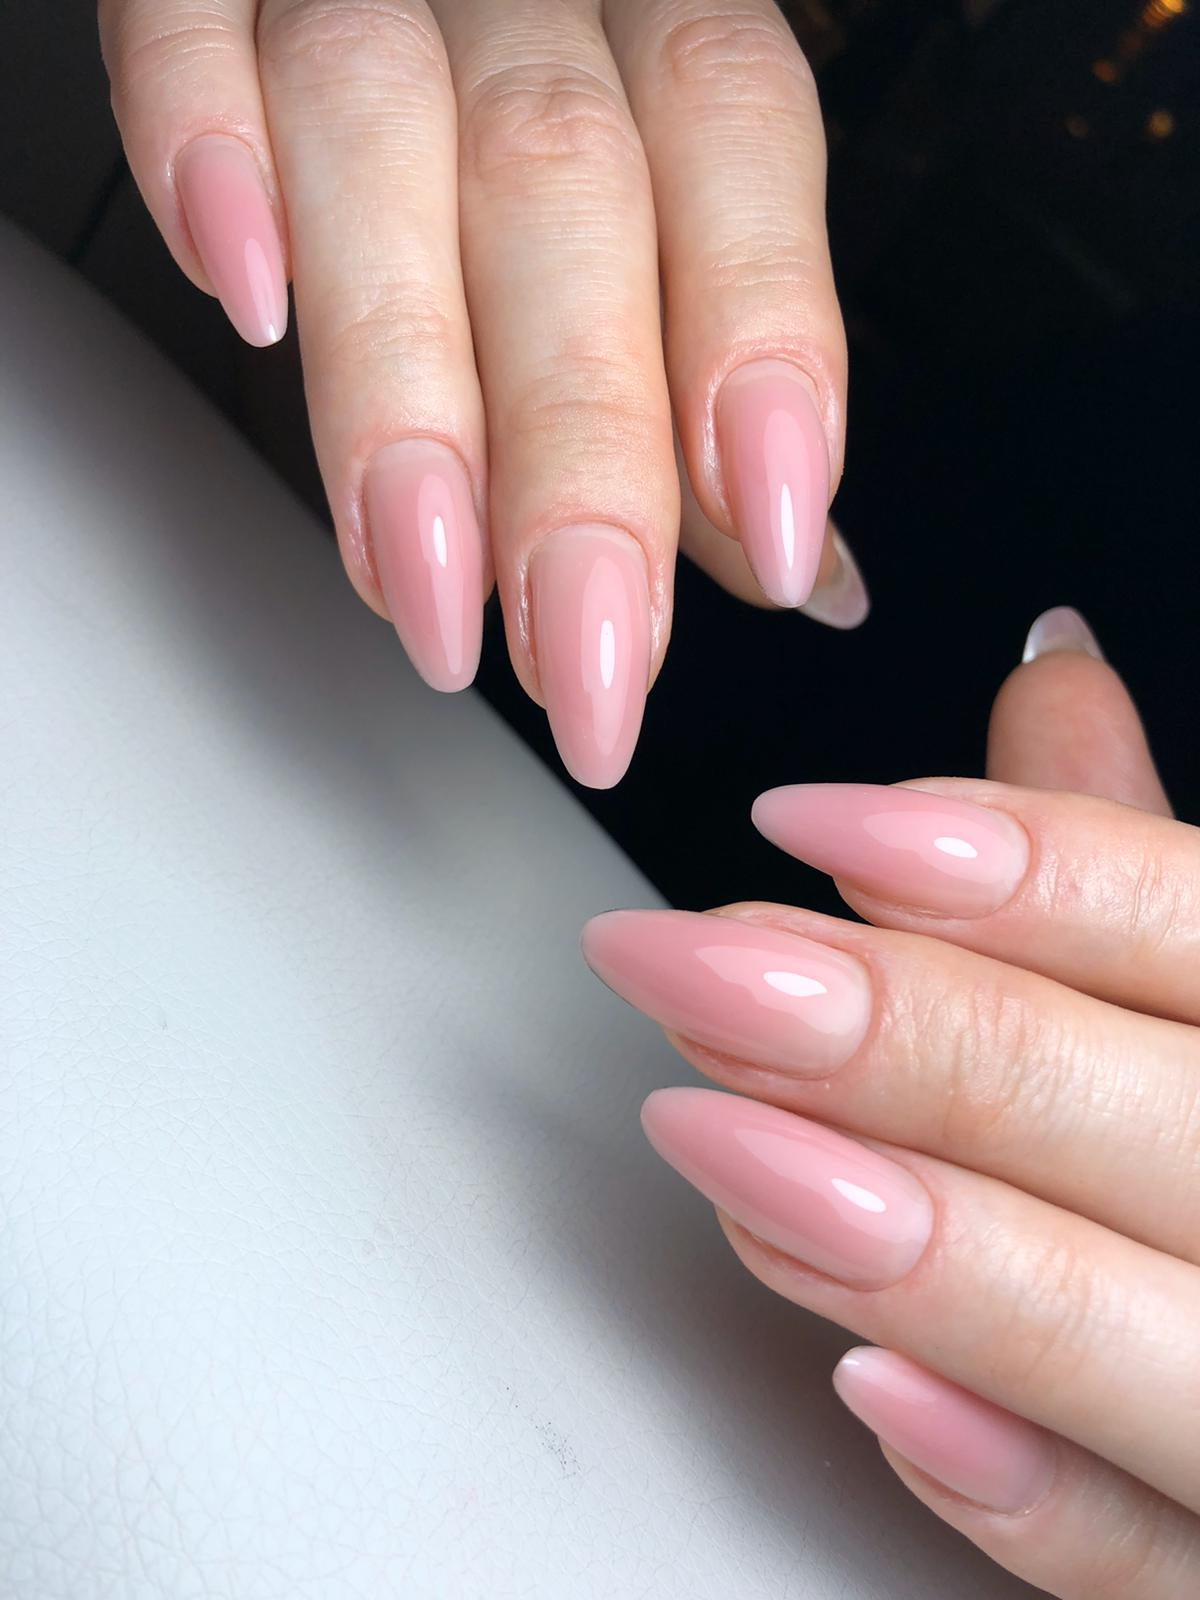 Nude Nails Le diX Concept Paris